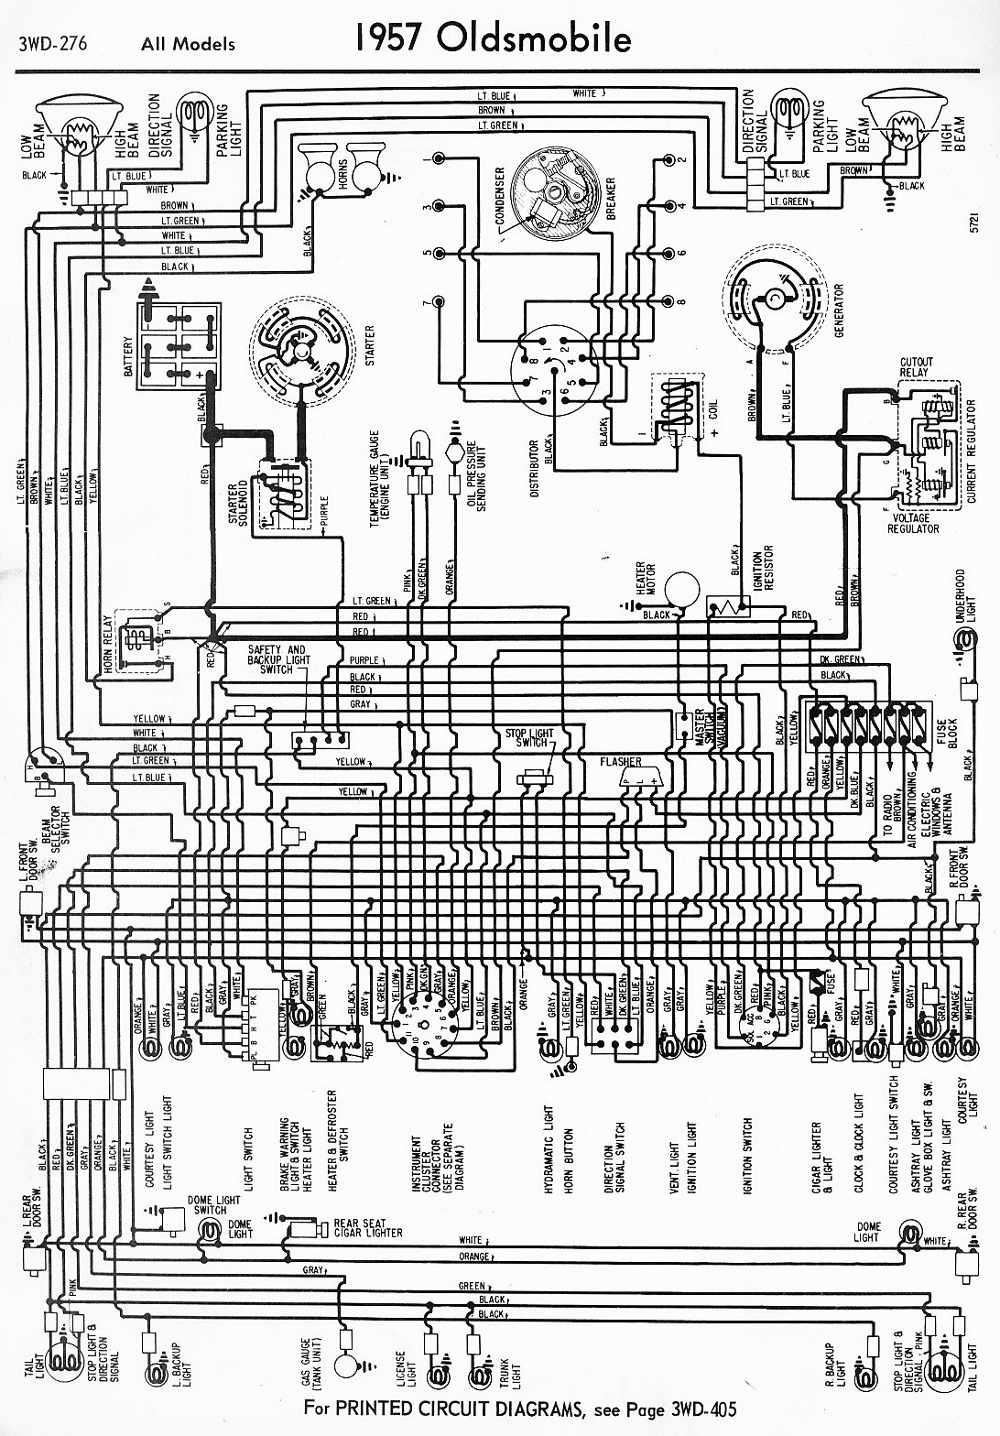 Oldsmobile Cutlass Supreme Wiring Diagram 1957 Complete Diagrams 911 Of All Models Rh Wiringdiagrams911 Blogspot Com 1998 88 Transmission 1969